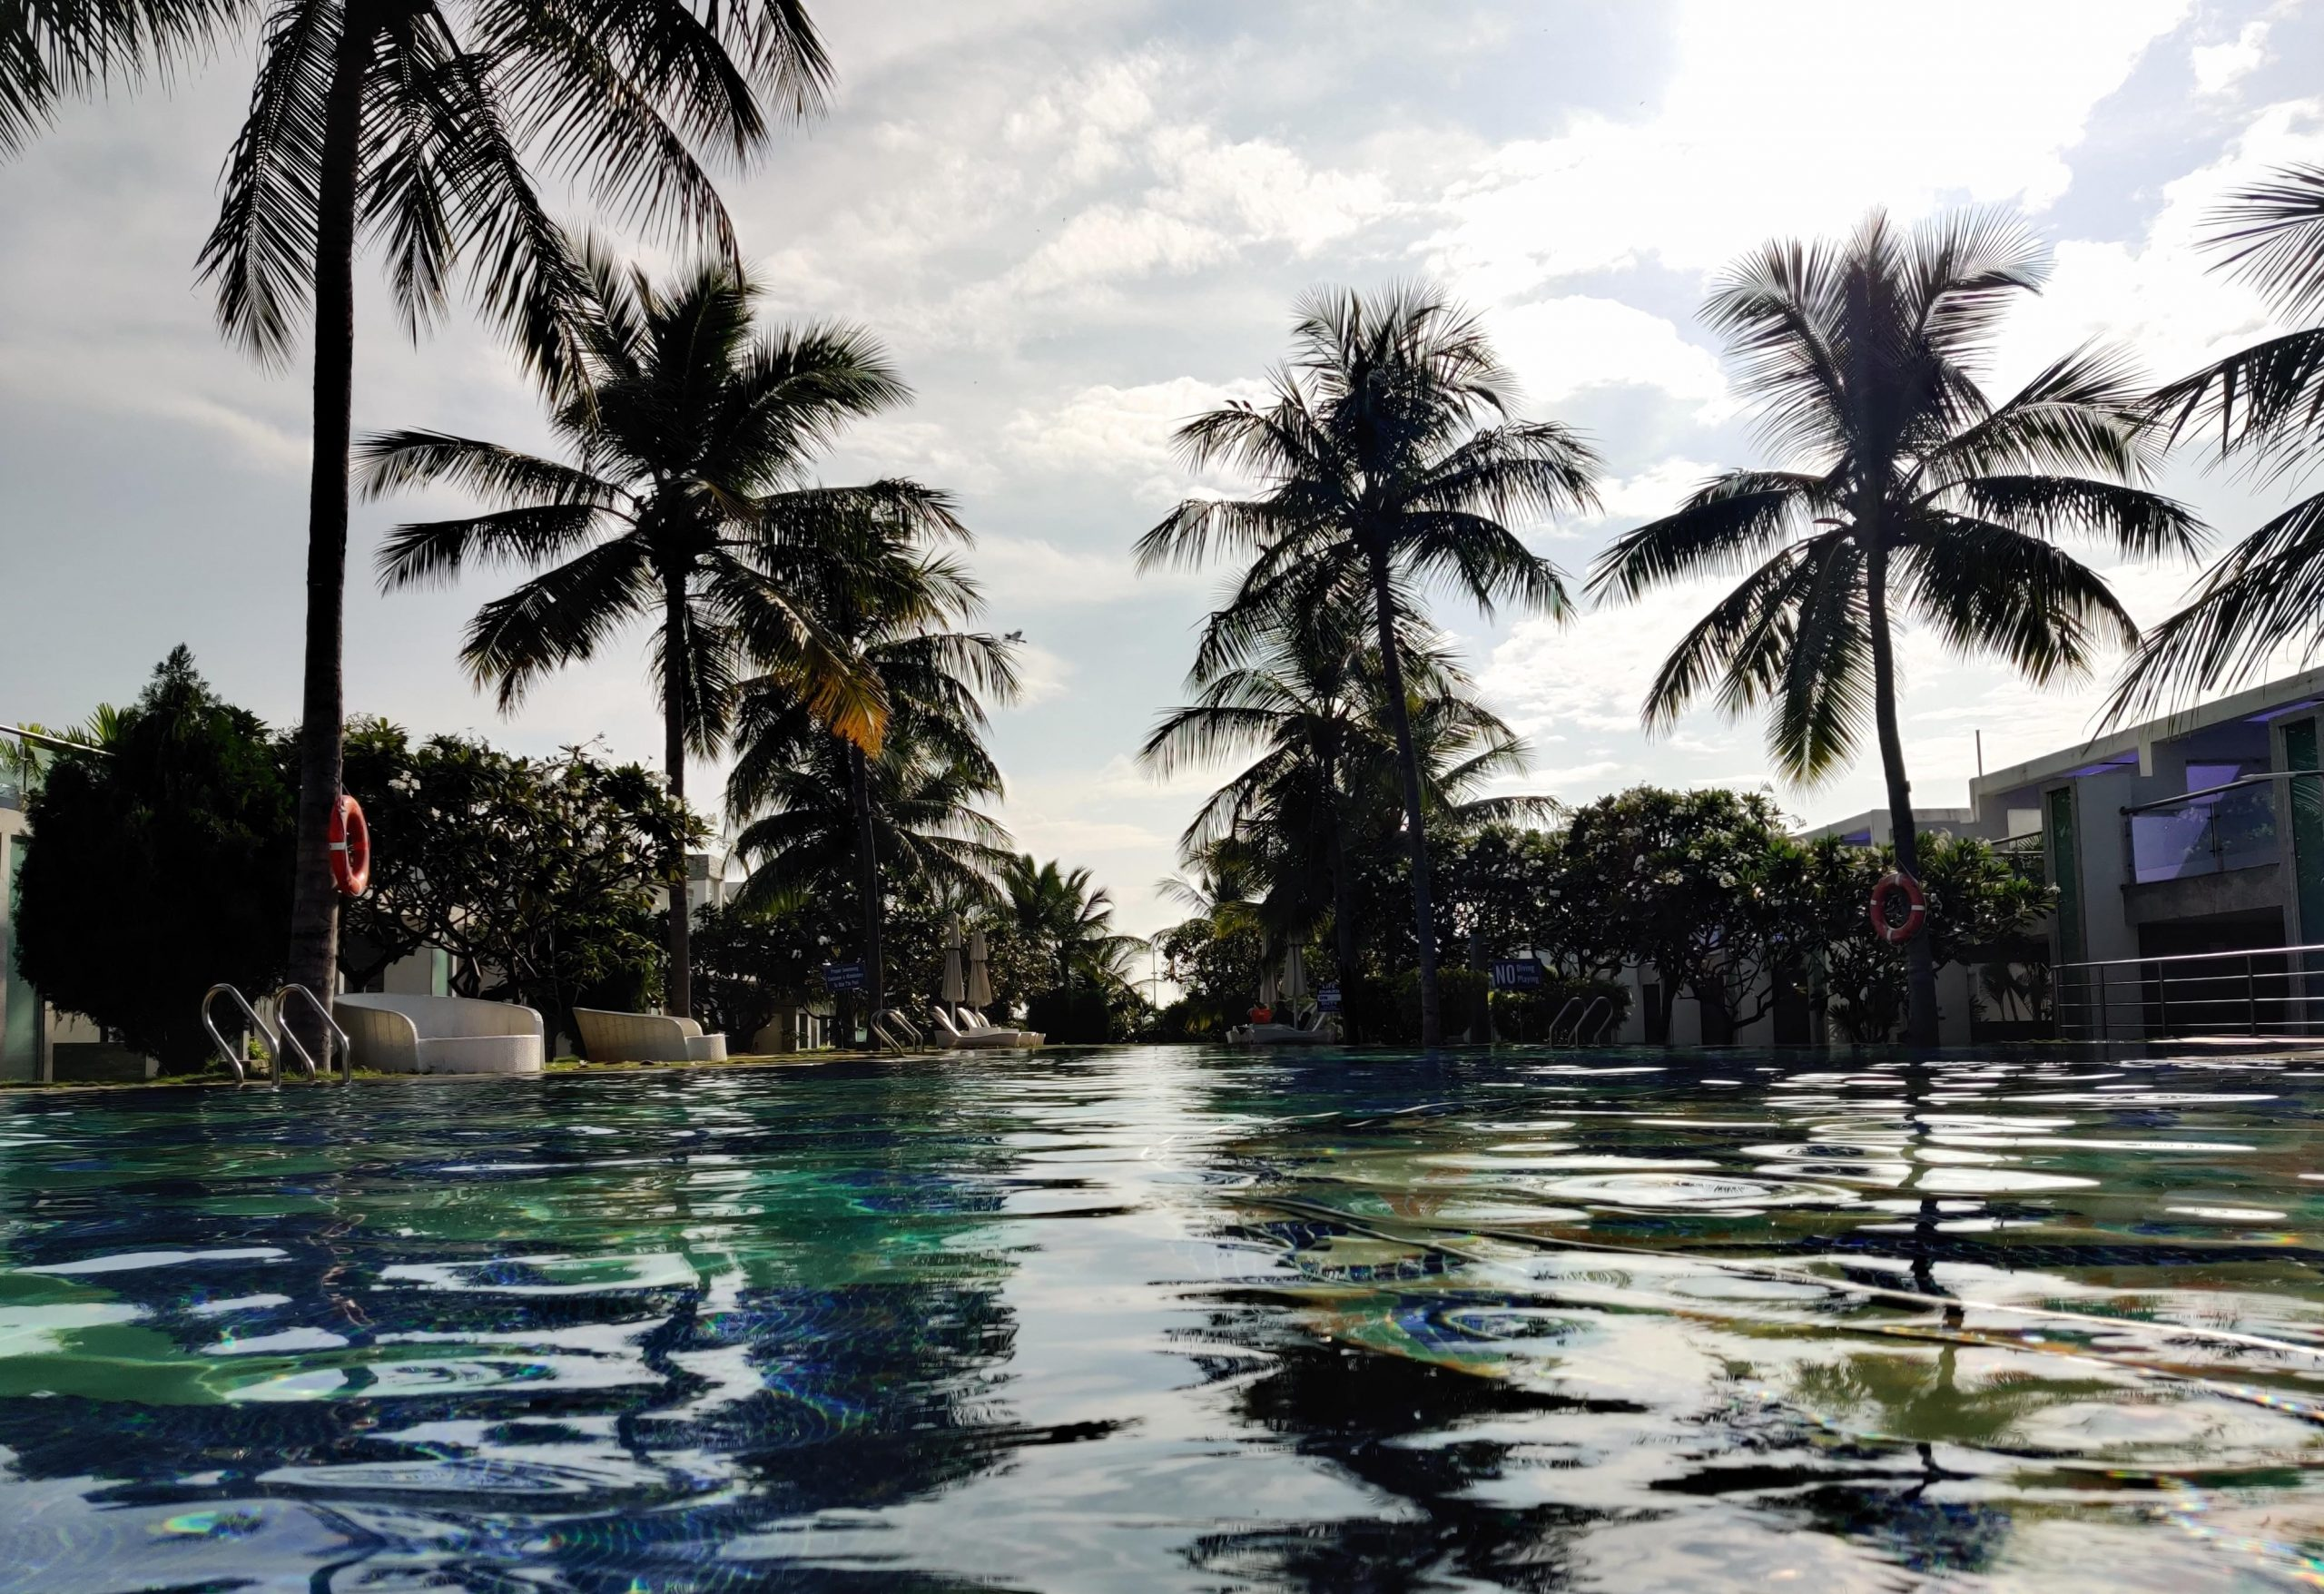 Palm trees around a swimming pool